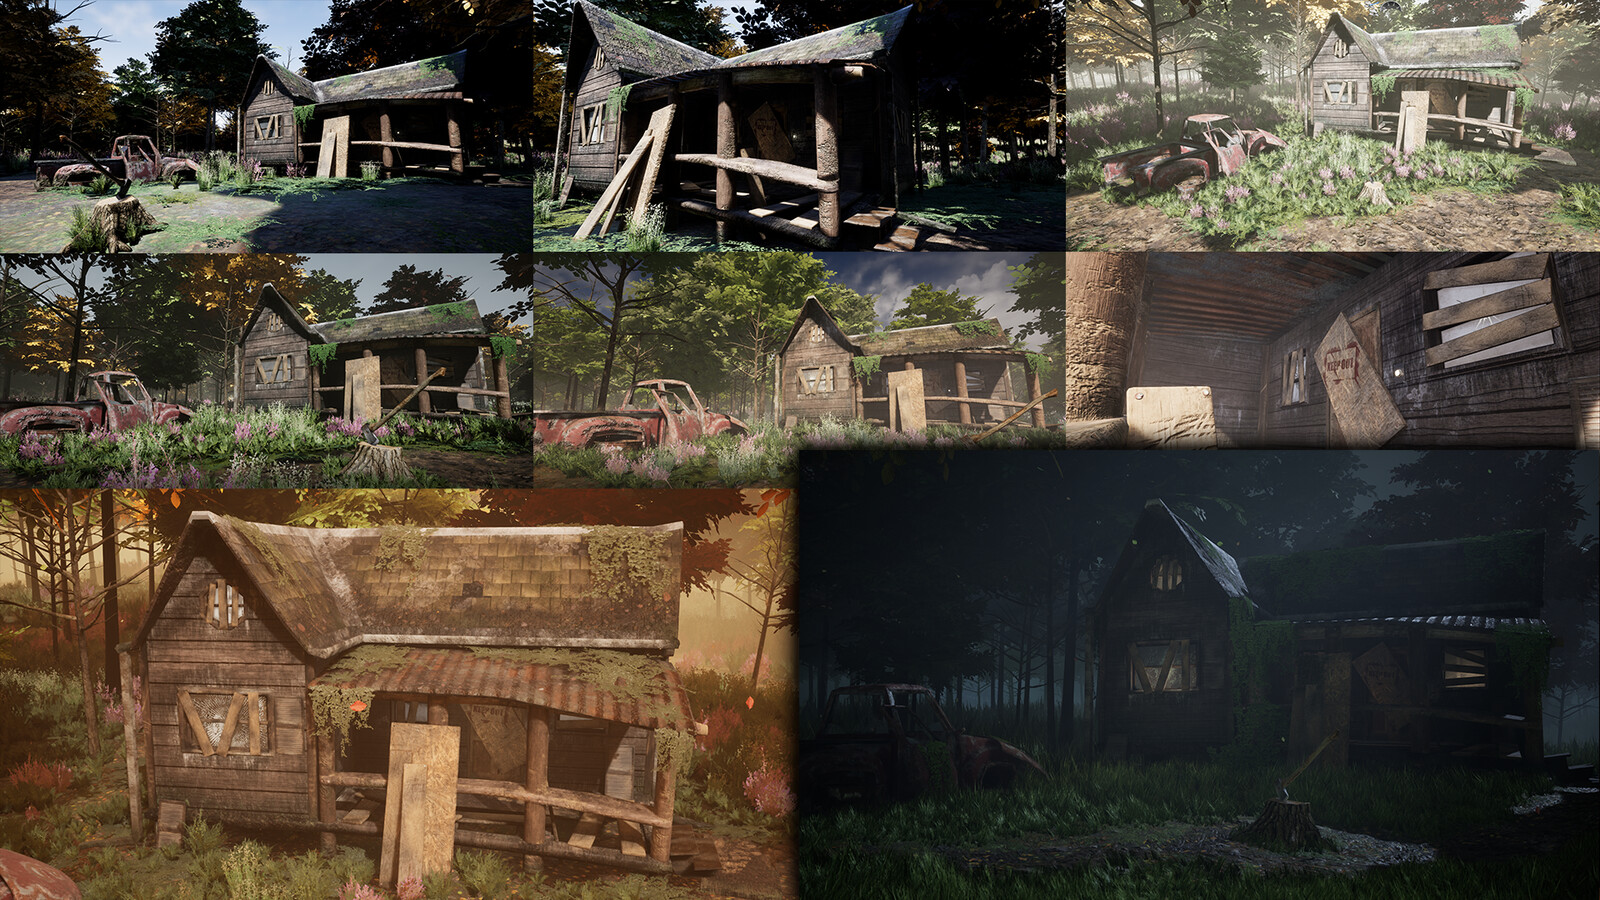 Progression of the project.